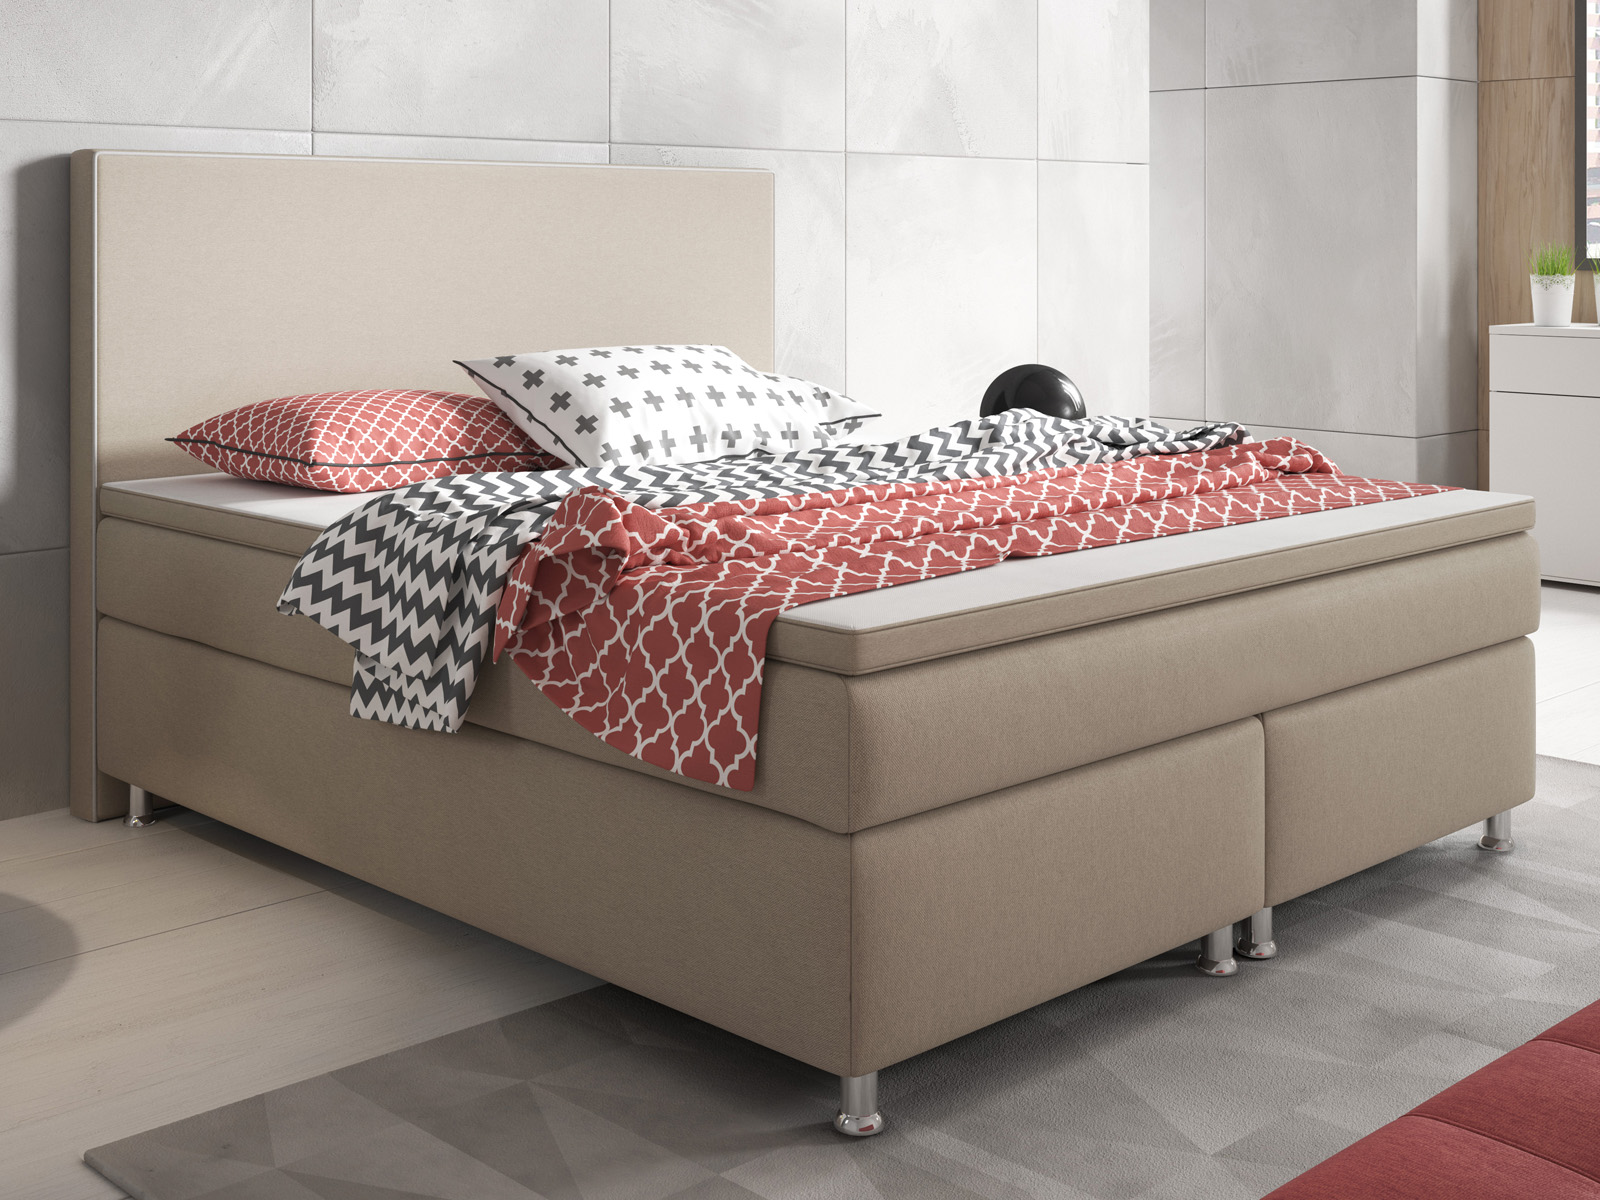 [Paket] Boxspringbett King Size 180x200 cm Webstoff Muddy